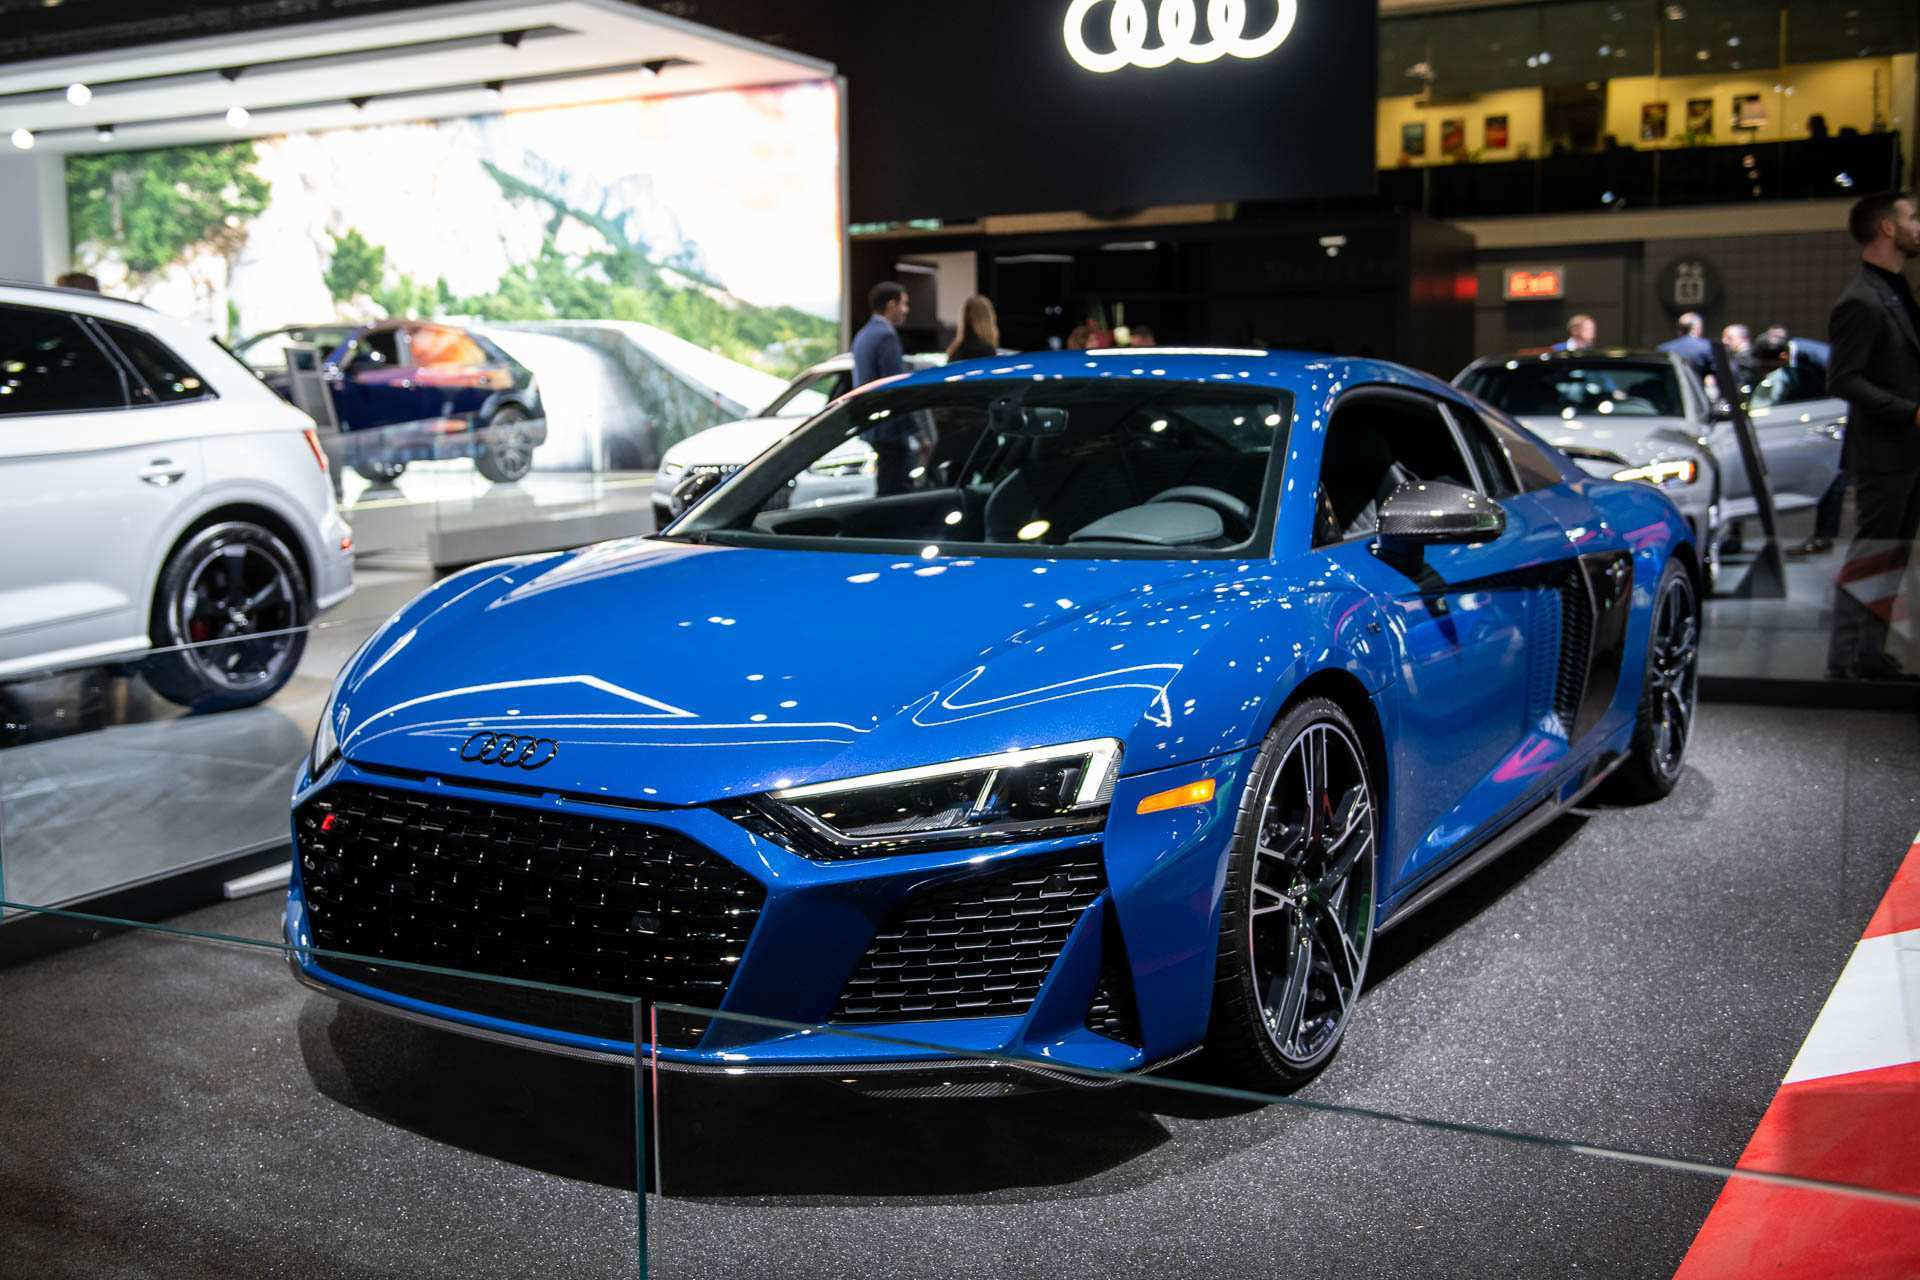 54 All New Pictures Of 2020 Audi R8 Exterior by Pictures Of 2020 Audi R8